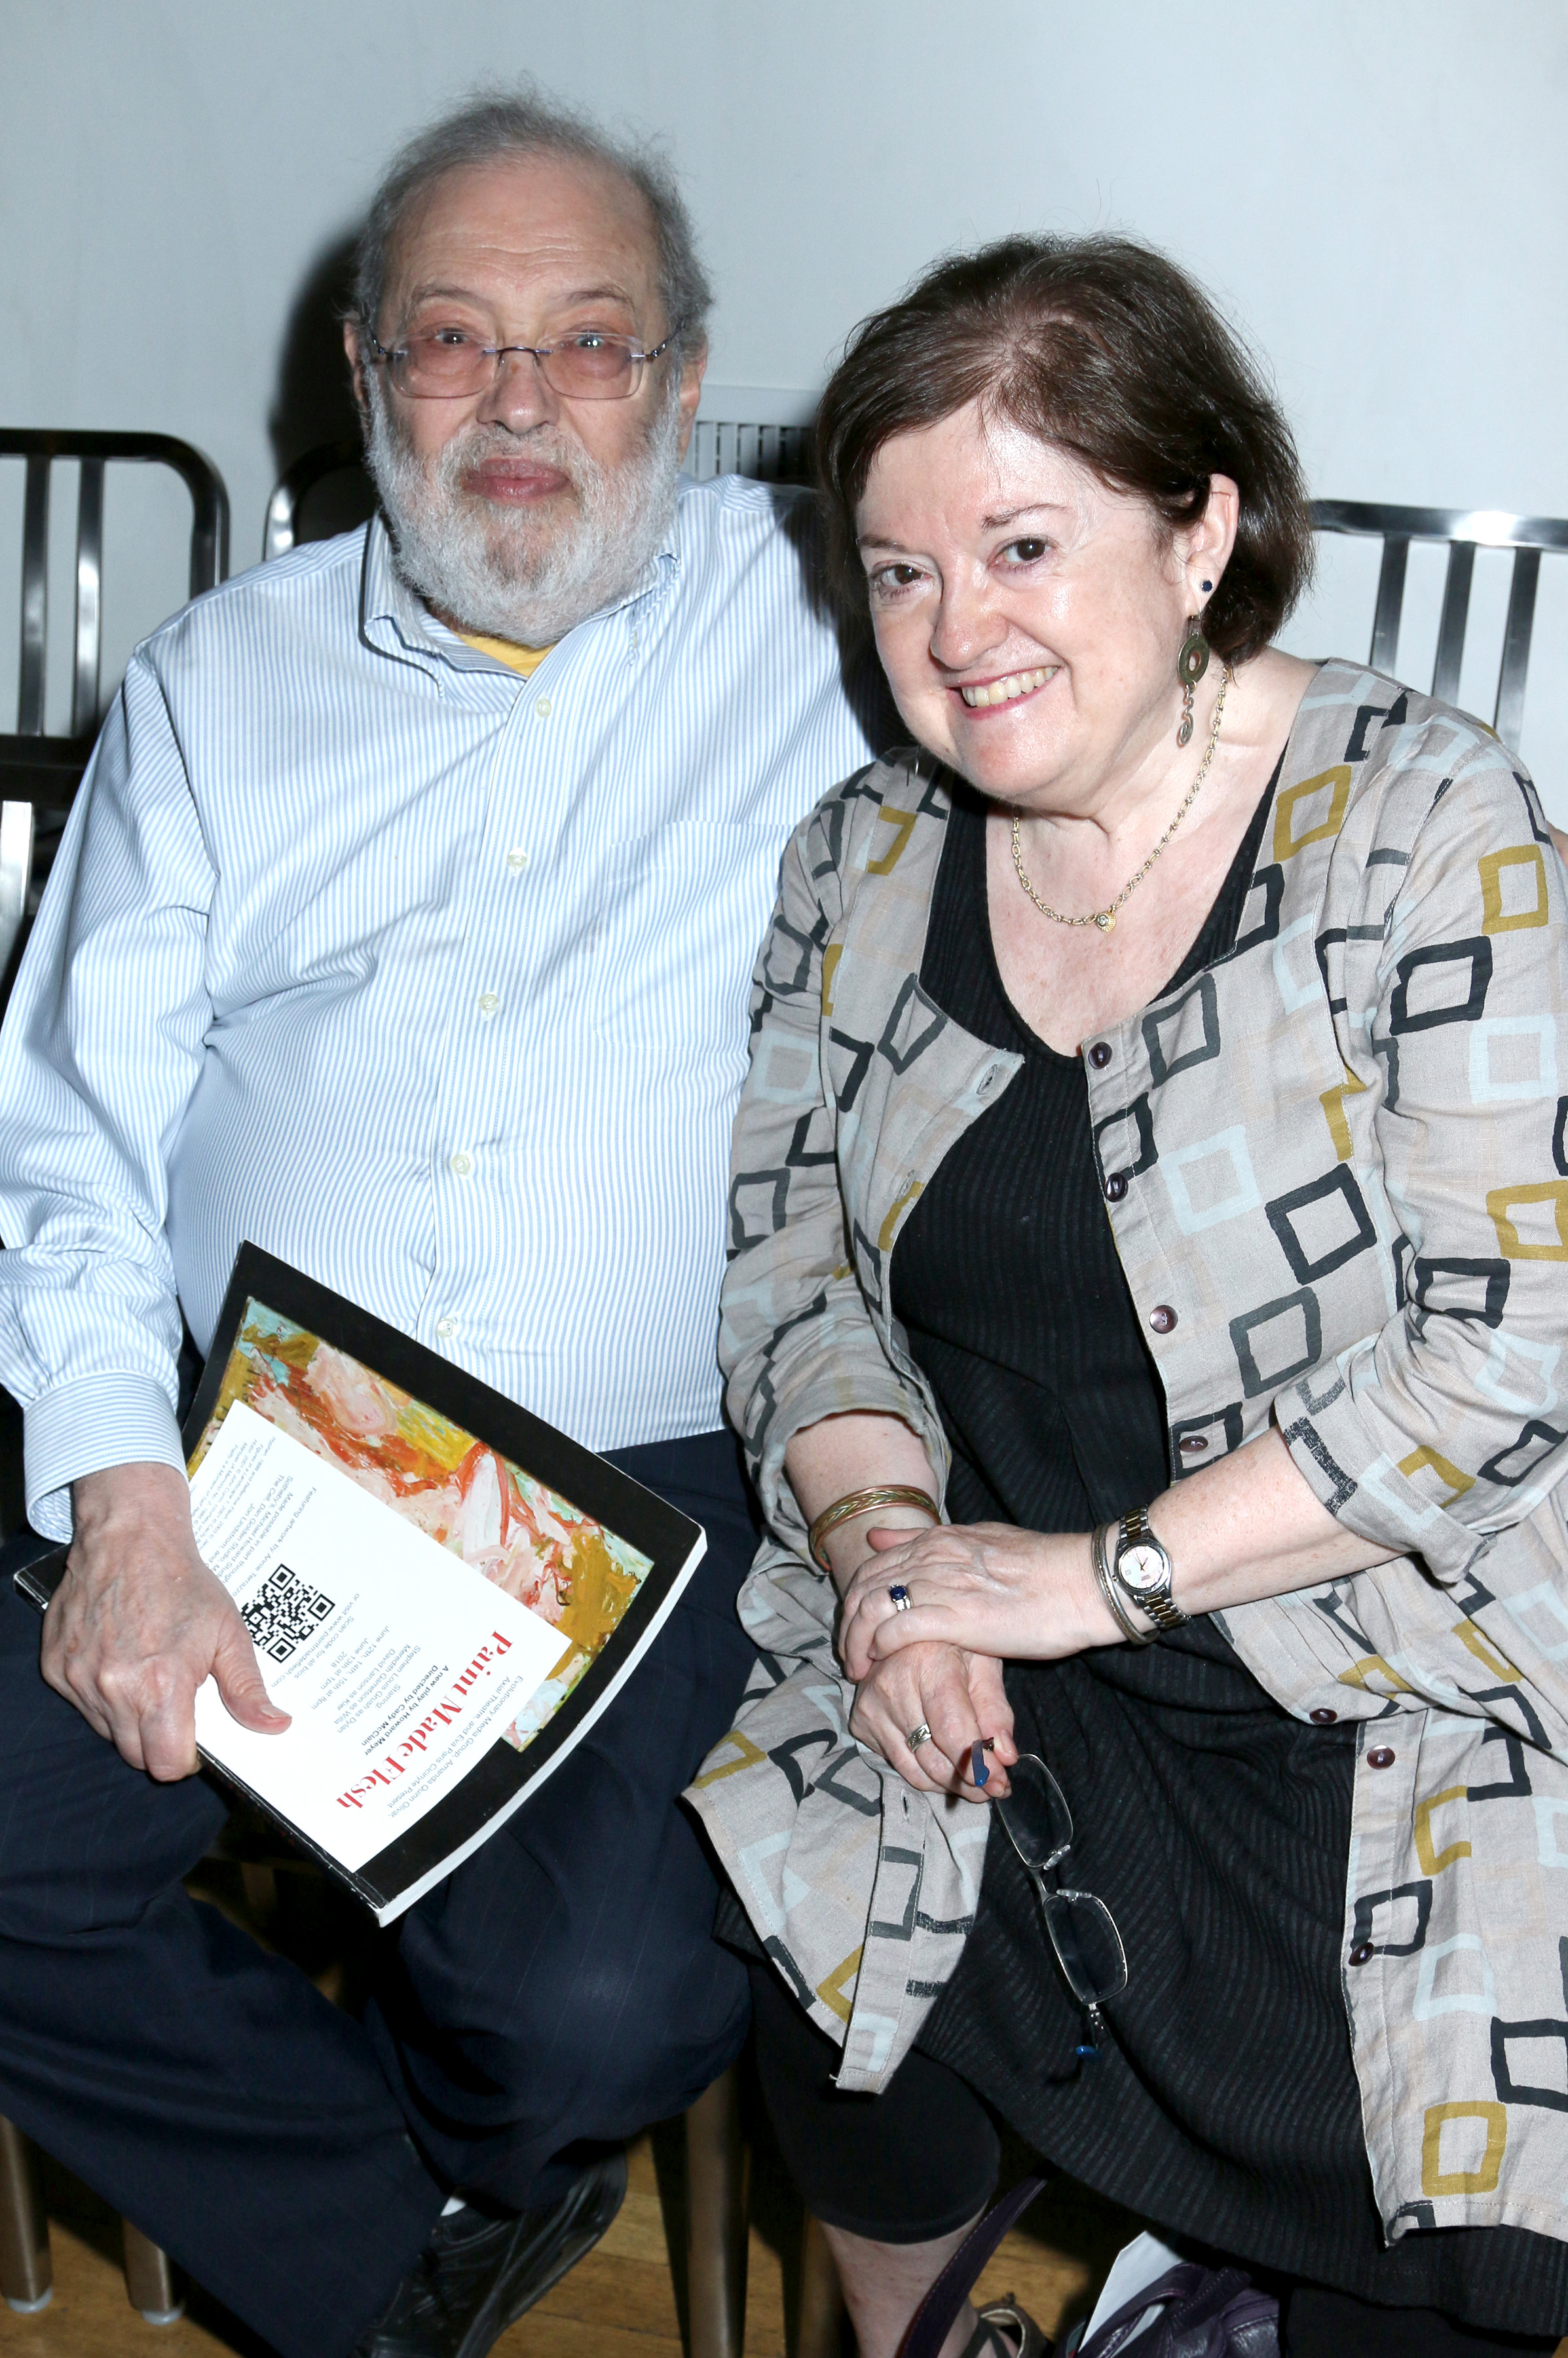 Arthur and Betsy Klampert (Axial Theater Board President and Axial Managing Director)